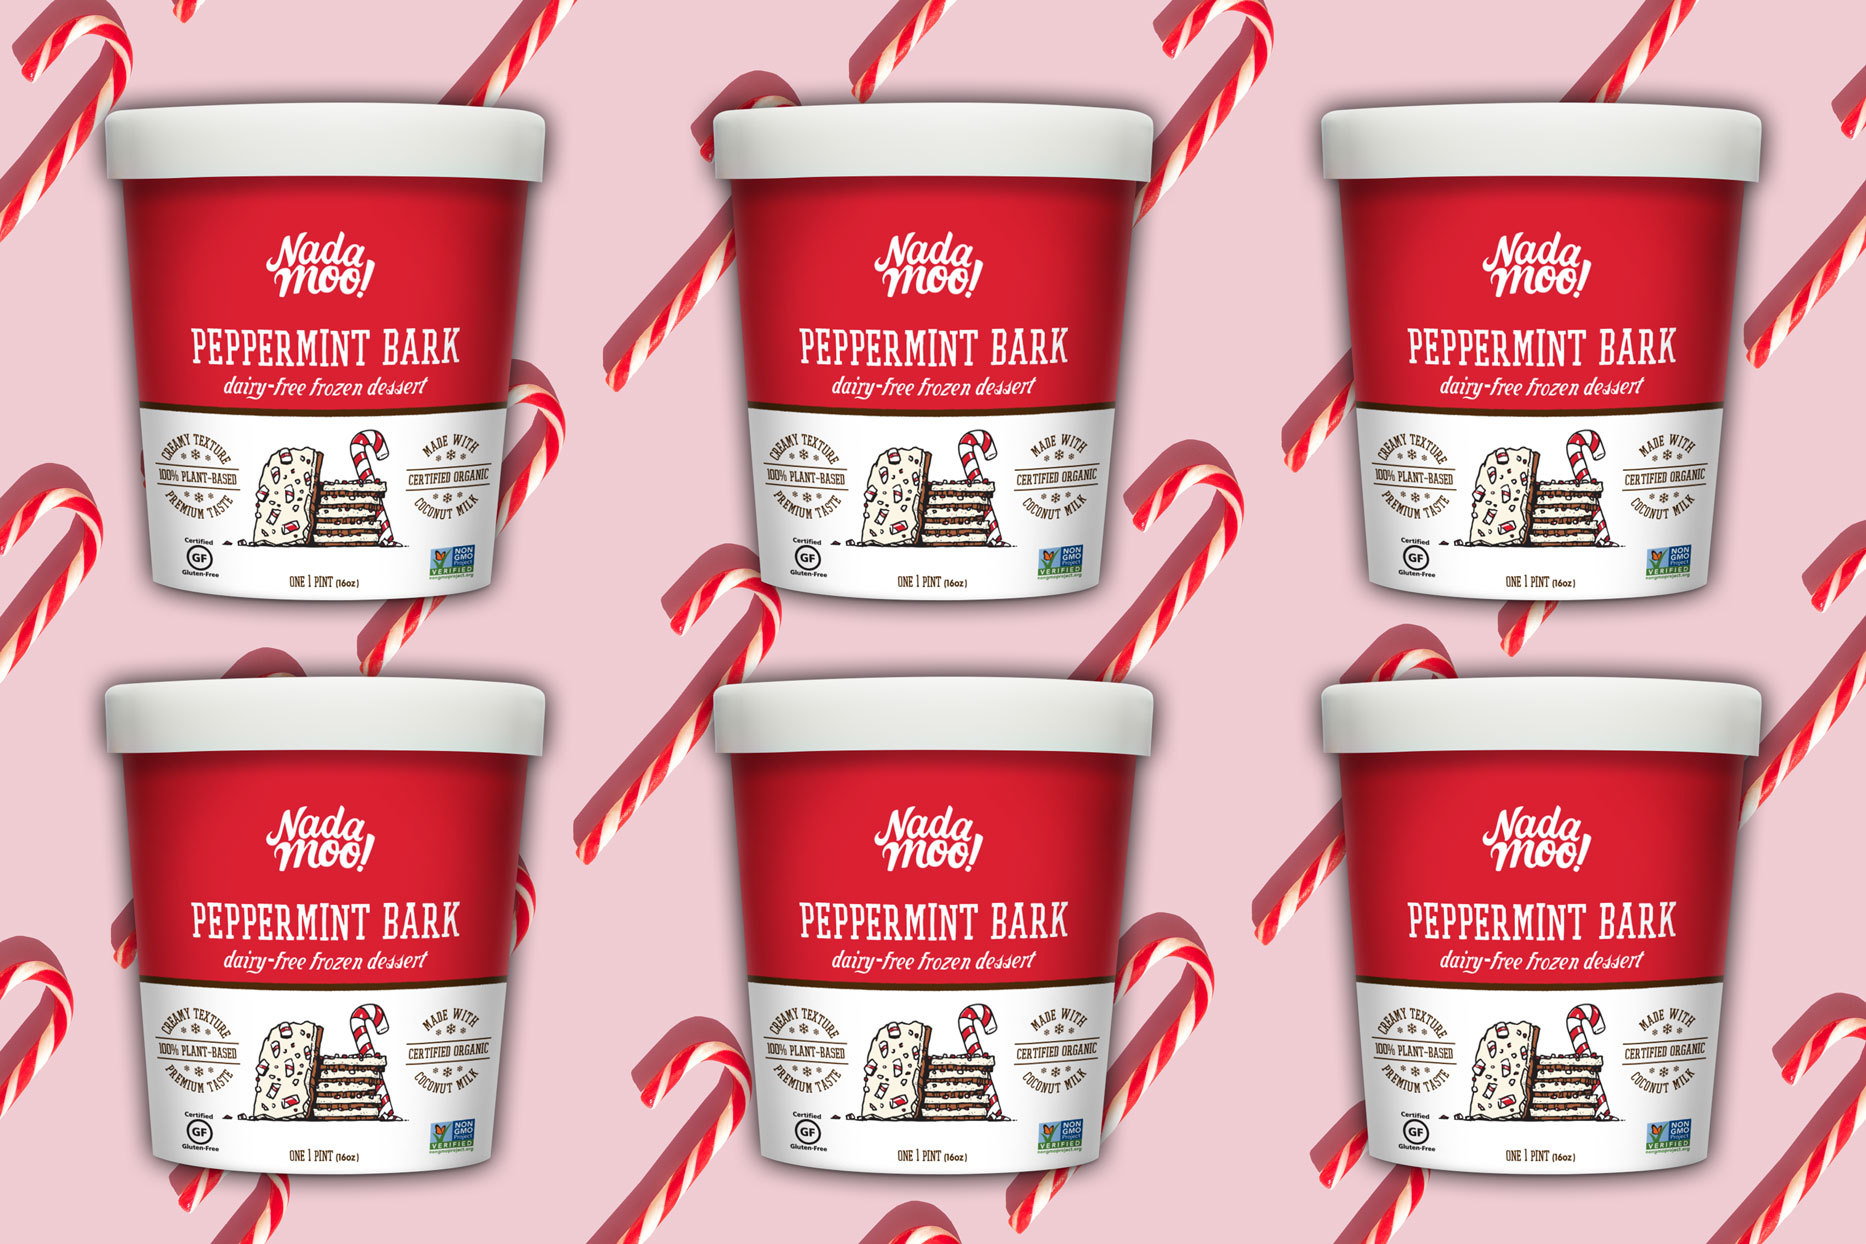 pint sized containers of Nada Moo Peppermint Bark Dairy-Free Frozen Dessert